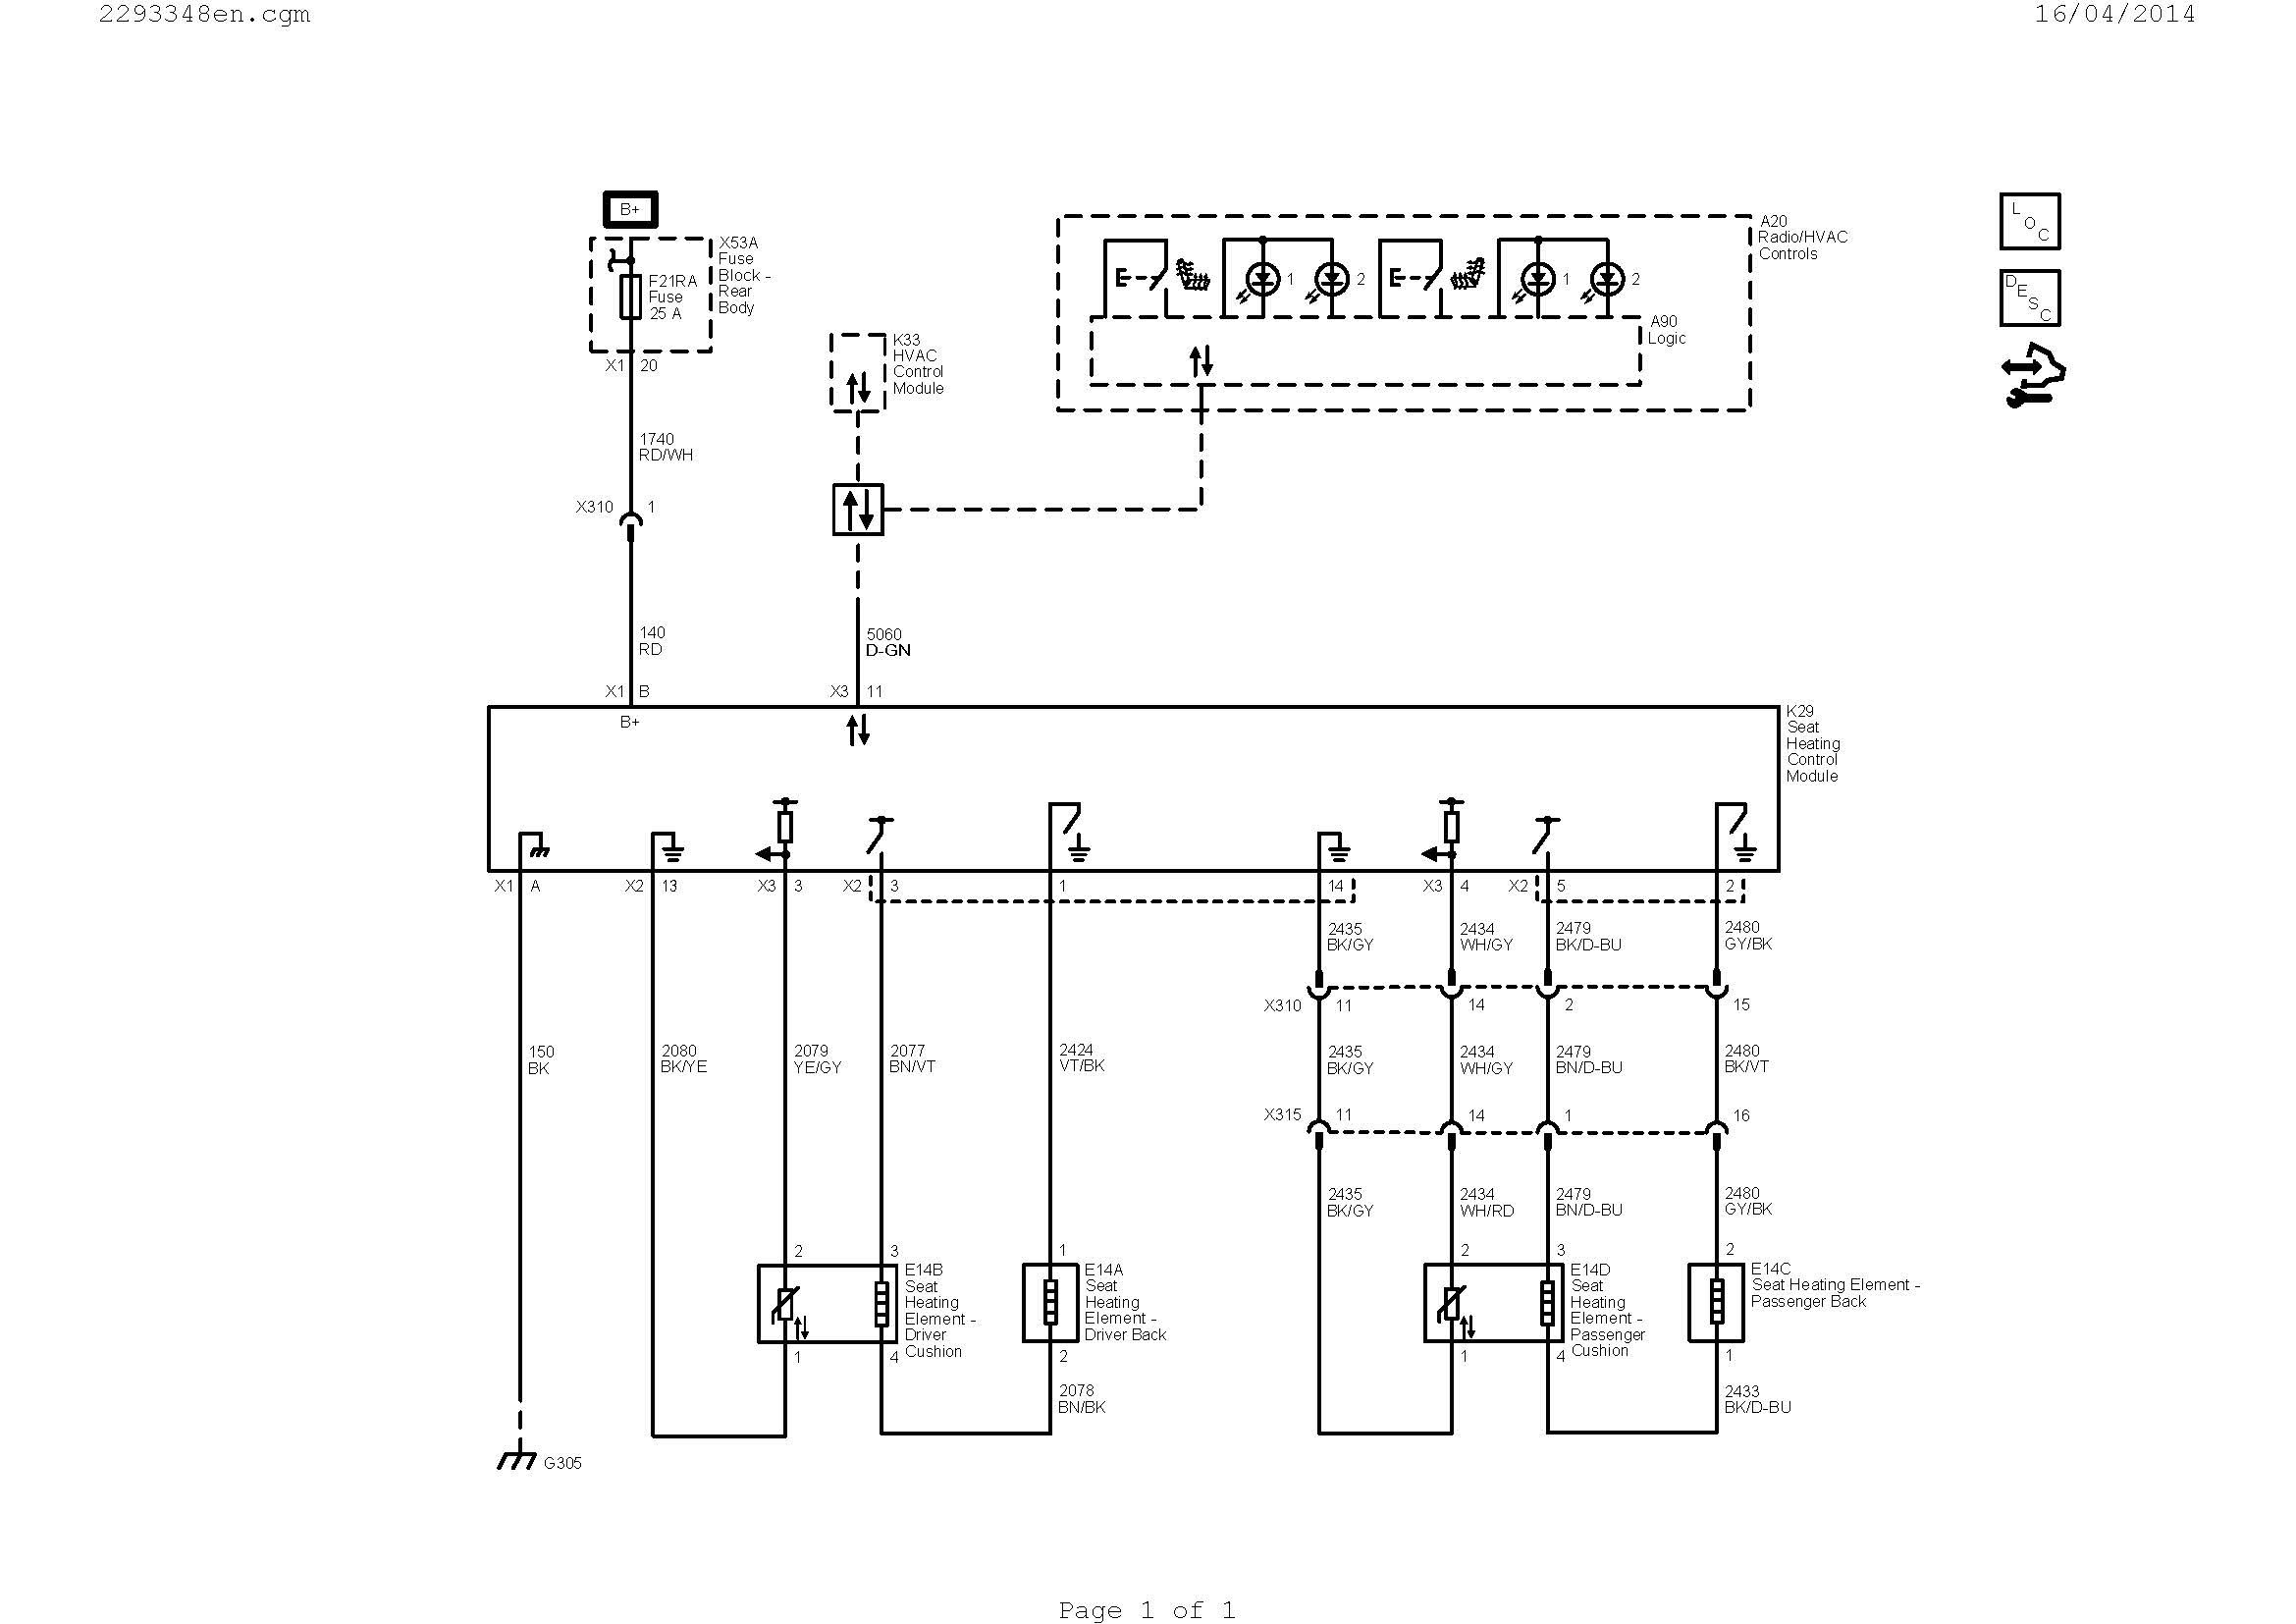 square d wiring diagram Download-headphone wiring diagram Download understanding hvac wiring diagrams Download Diagram Websites Unique Hvac Diagram 0d DOWNLOAD Wiring Diagram 20-p